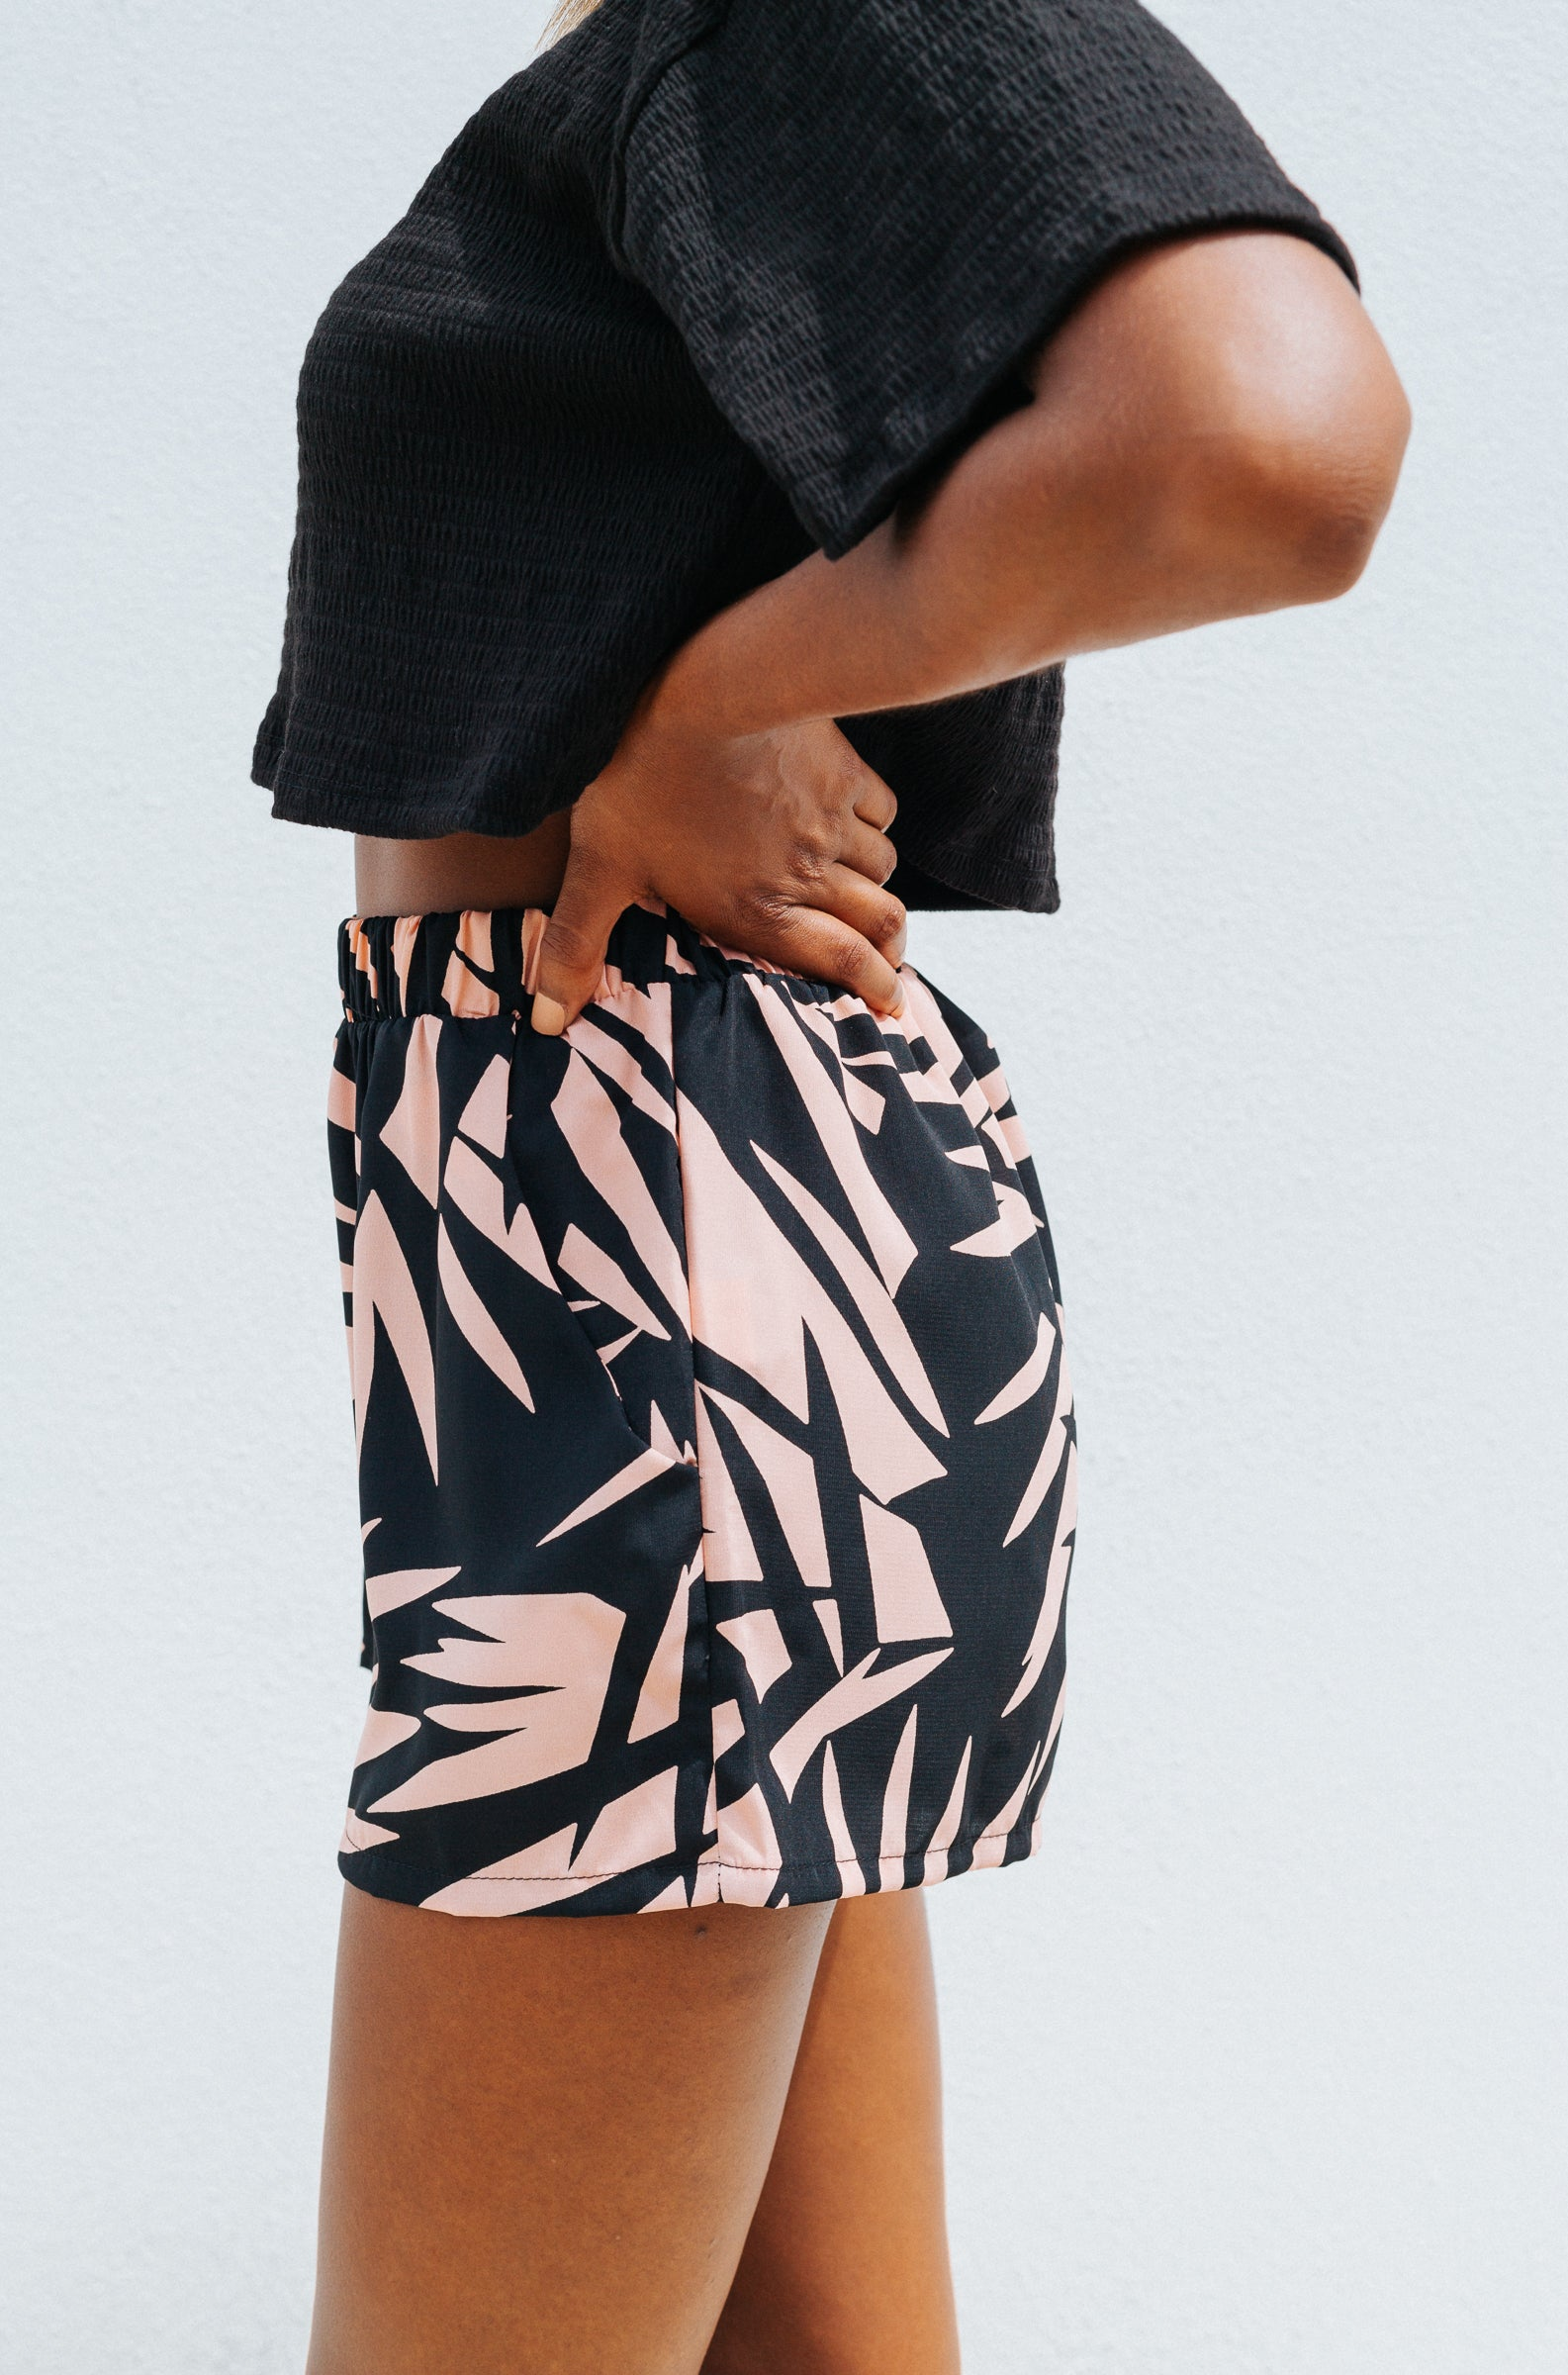 Pink peachy tropical prints cover the fabric of these fun summer shorts. It has an elastic waistband and goes down into side pockets on relaxed shorts.